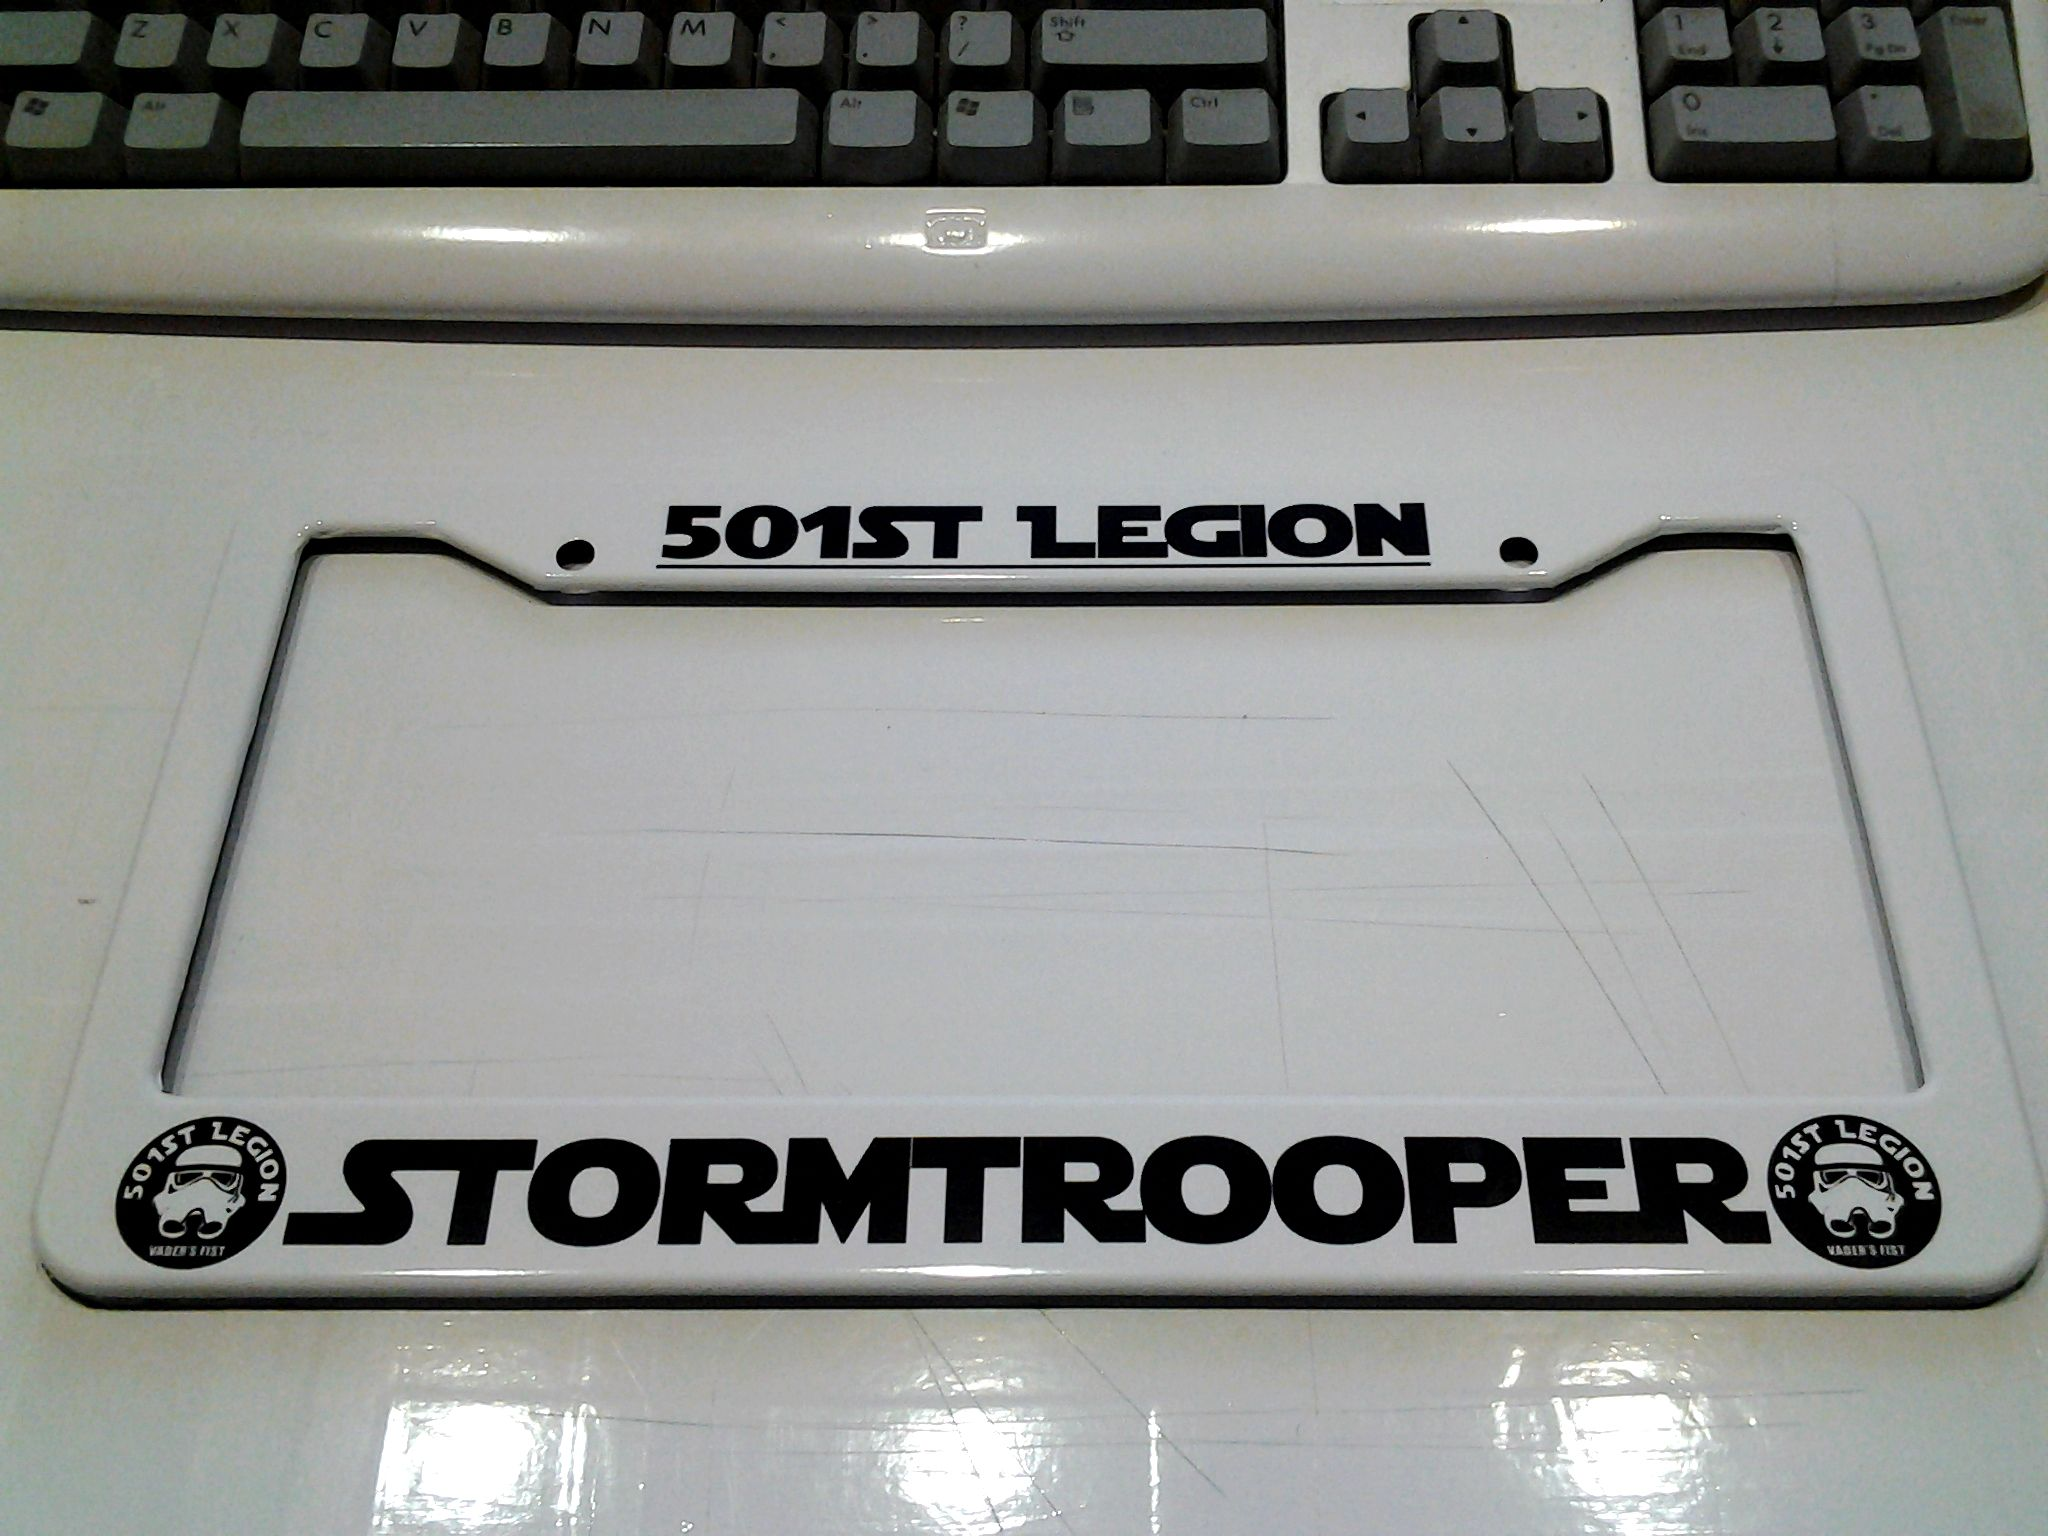 501st legion plate frame in all white